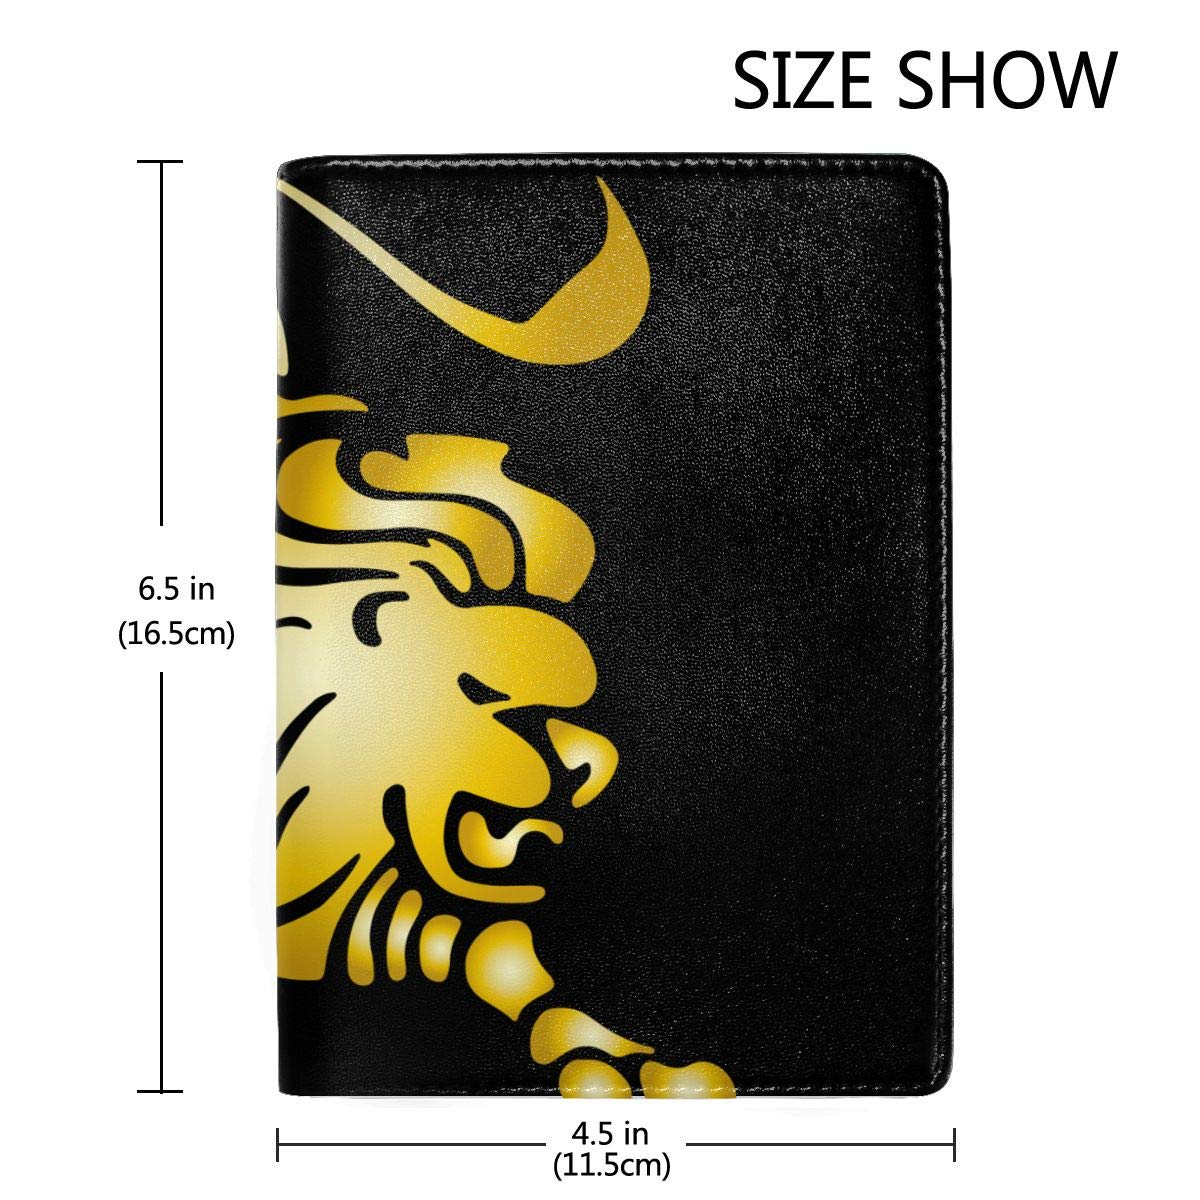 Gold Zodiac Leo Fashion Leather Passport Holder Cover Case Travel Wallet 6.5 In